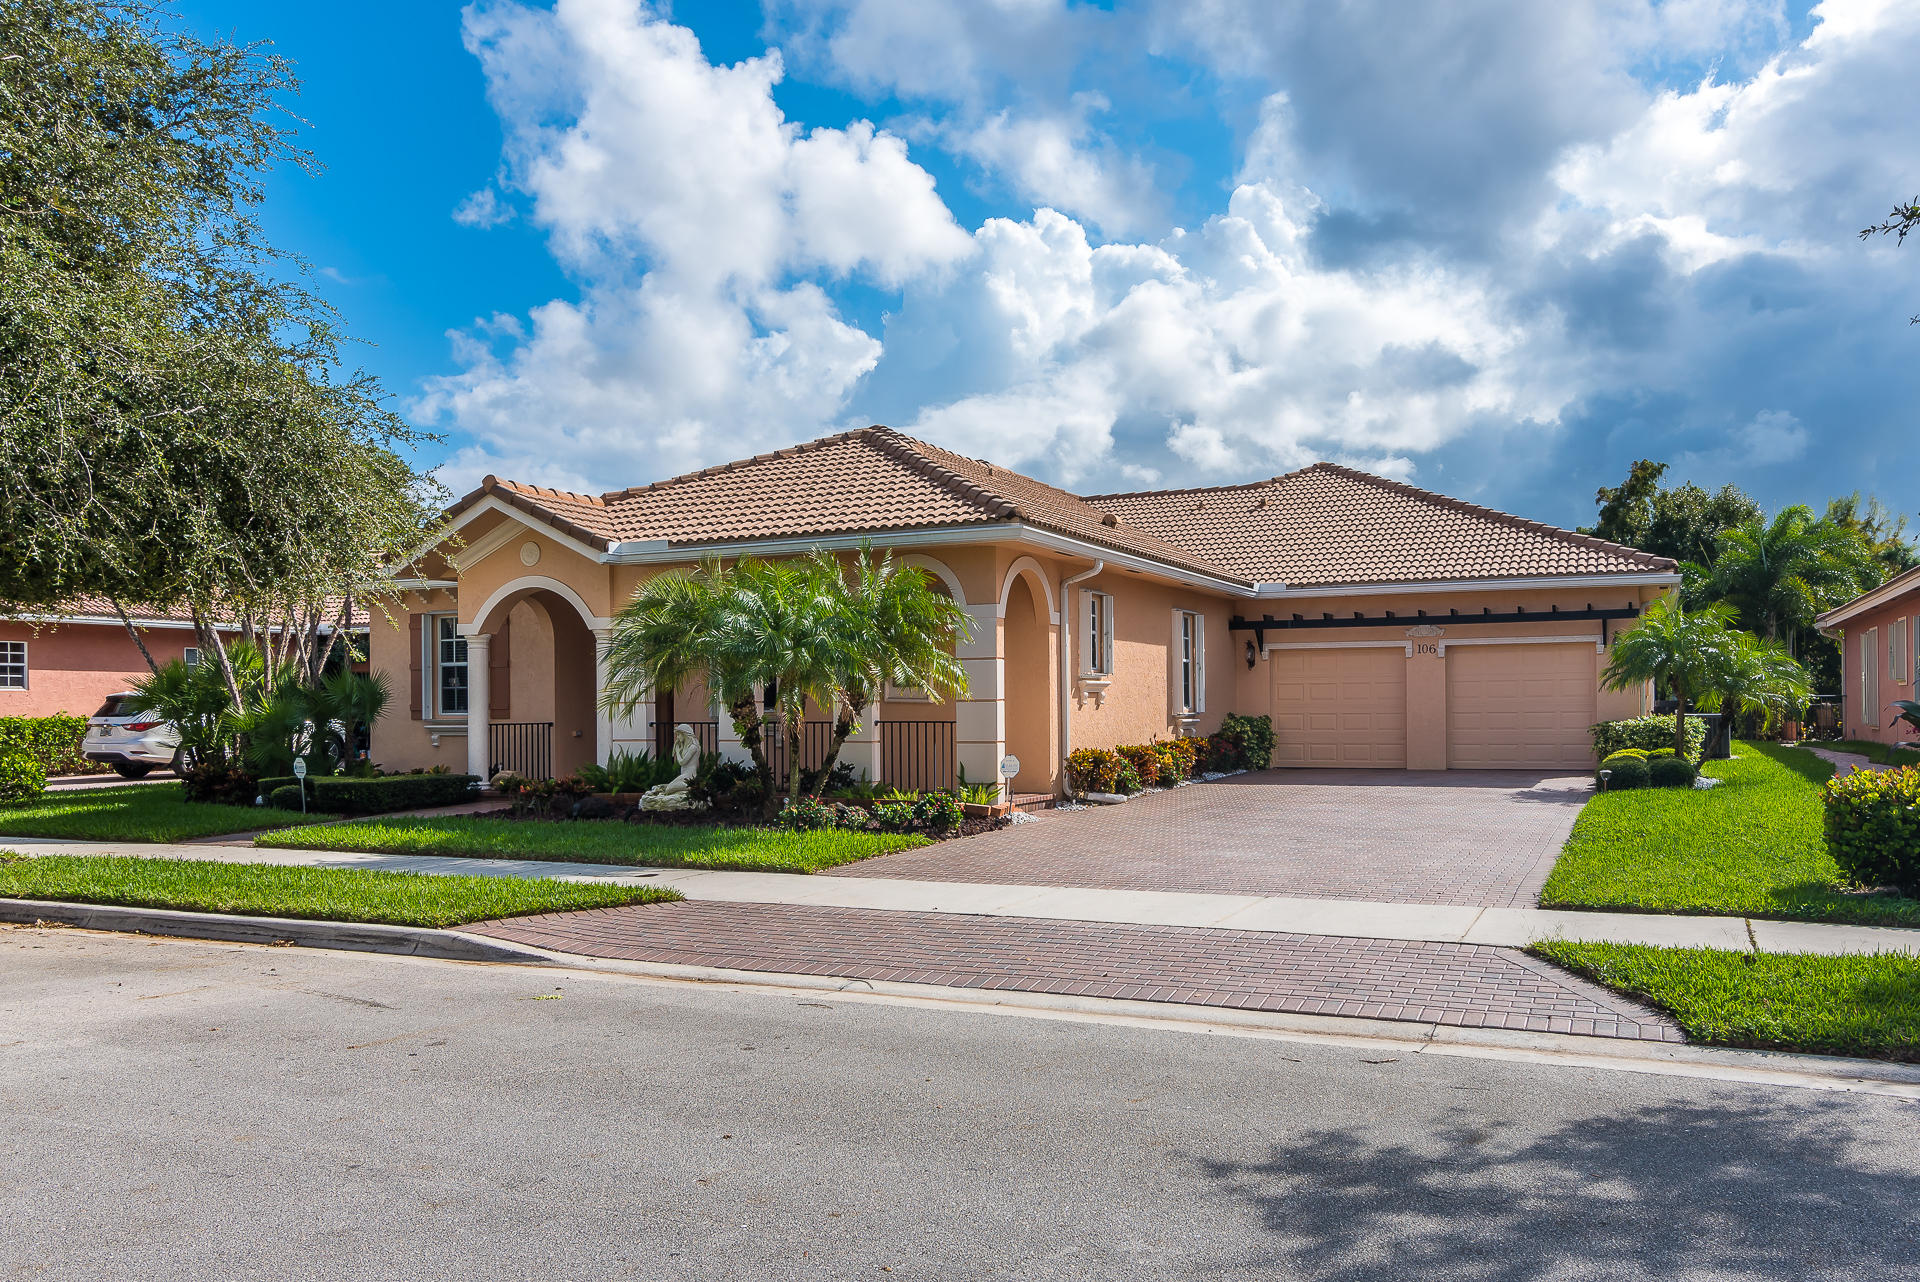 Home for sale in Paseos Jupiter Florida